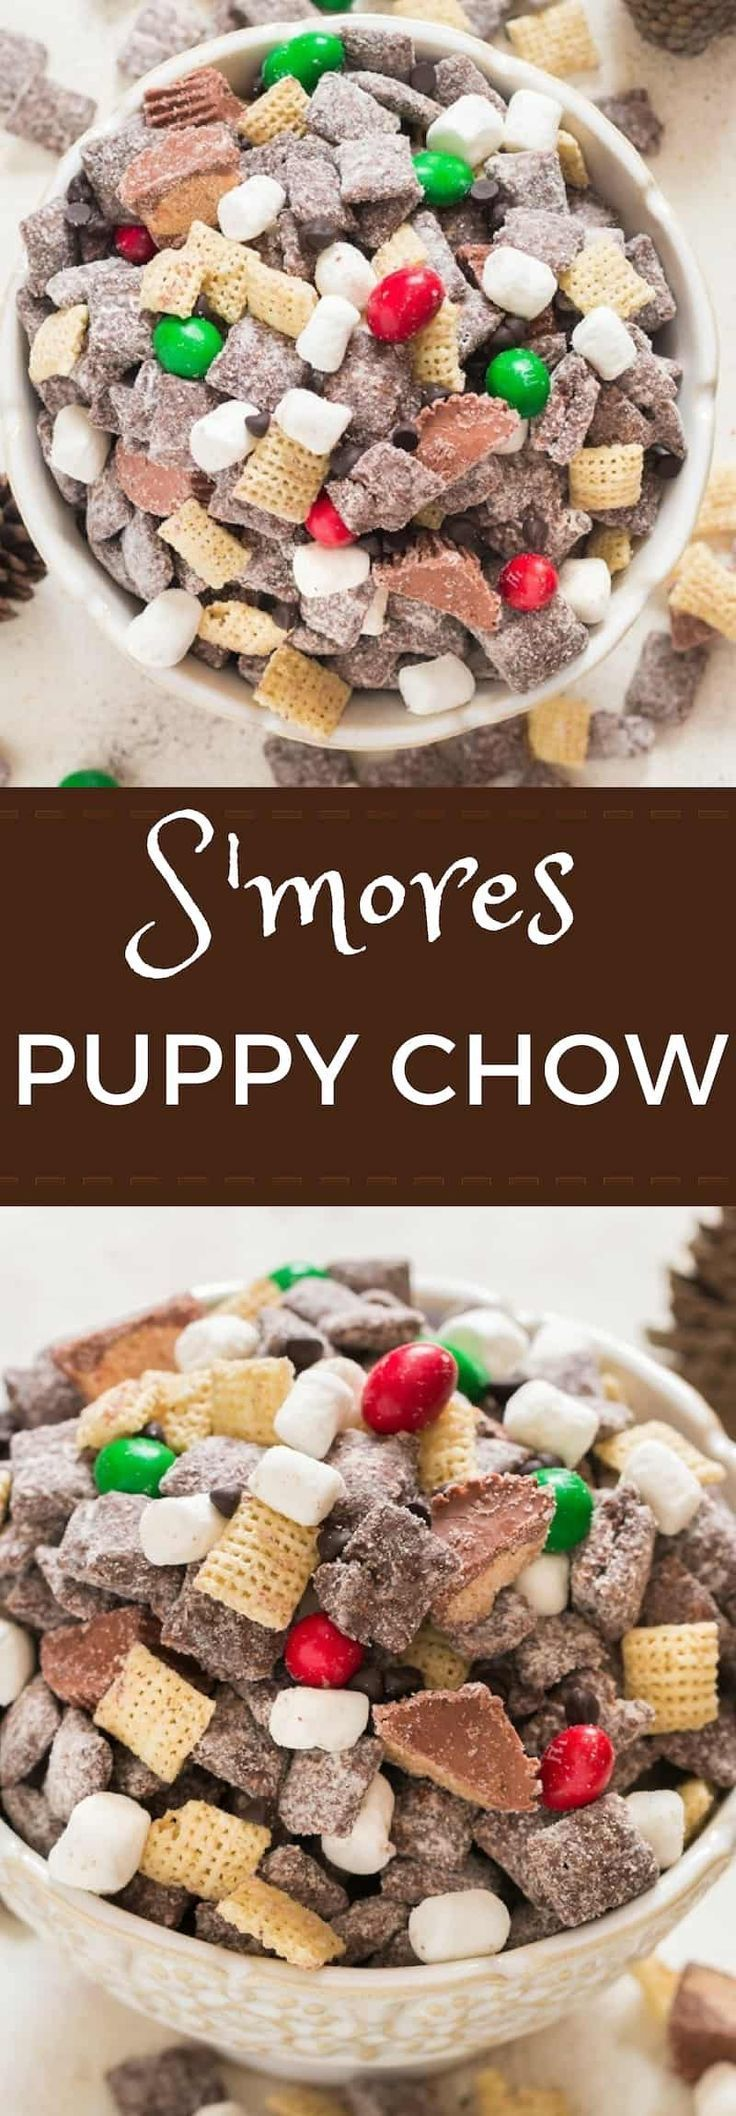 S'mores Puppy Chow Recipe Chex mix recipes, Puppy chow